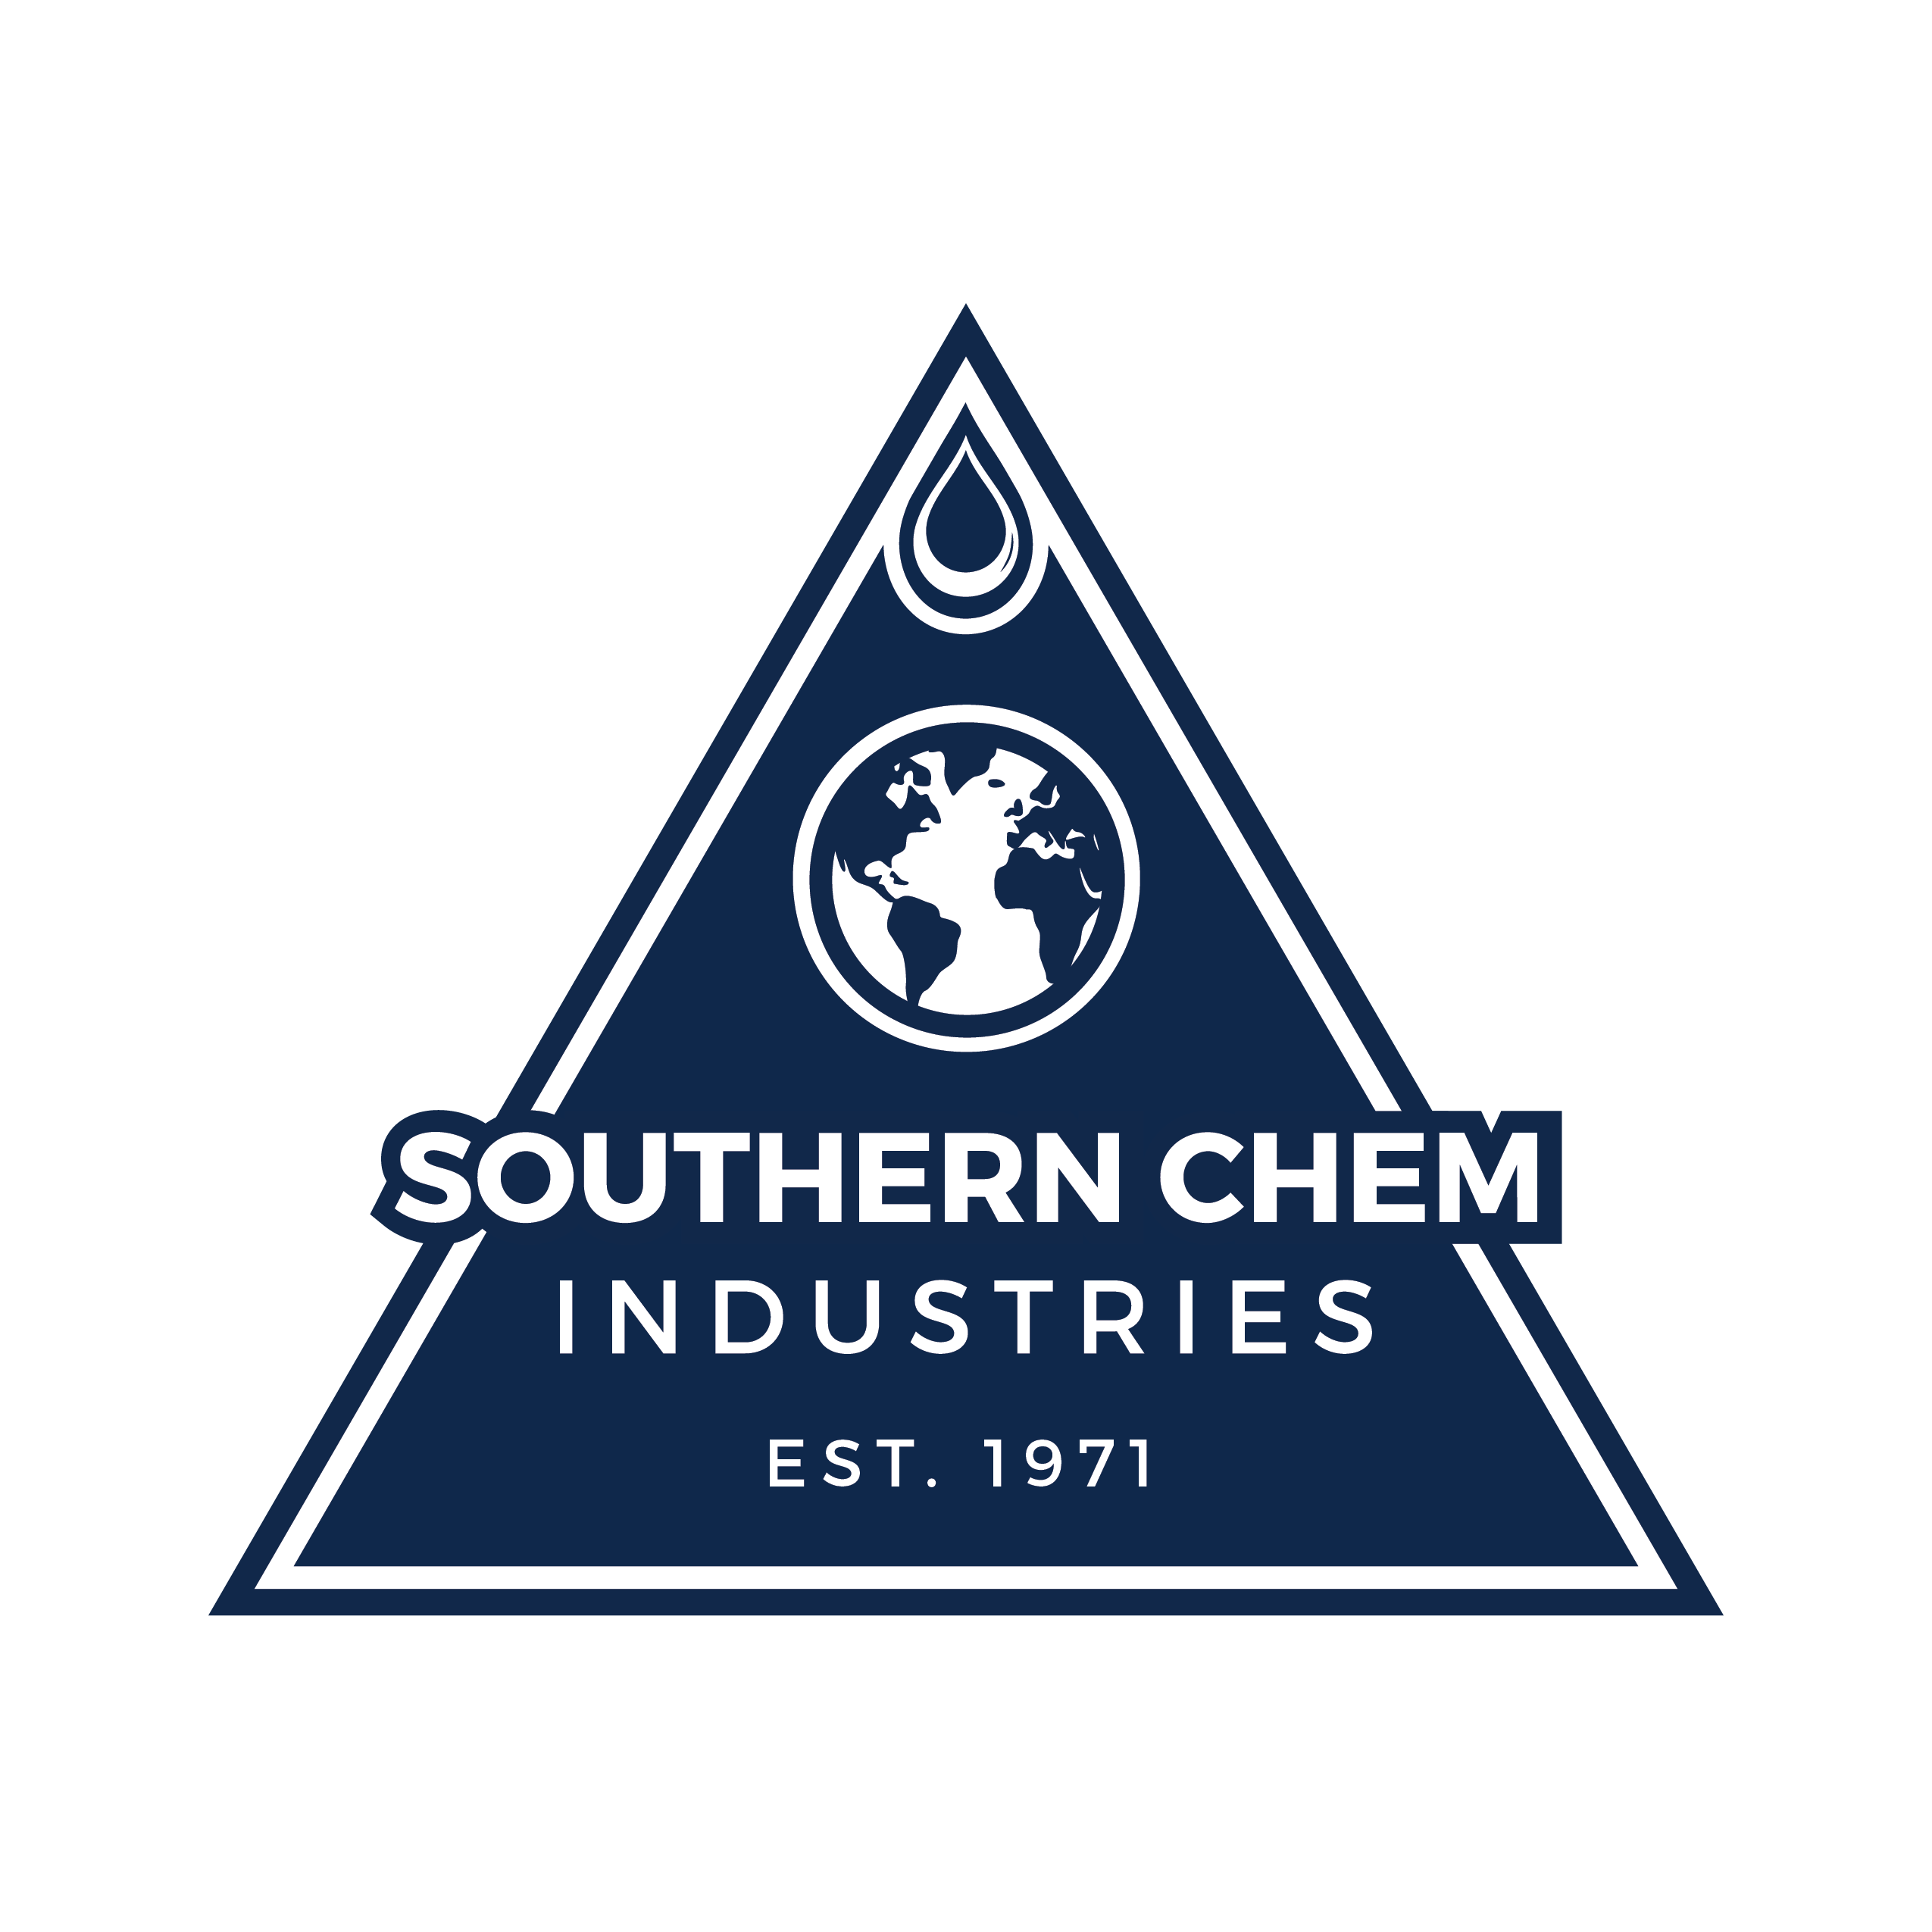 Southern Chem Industries